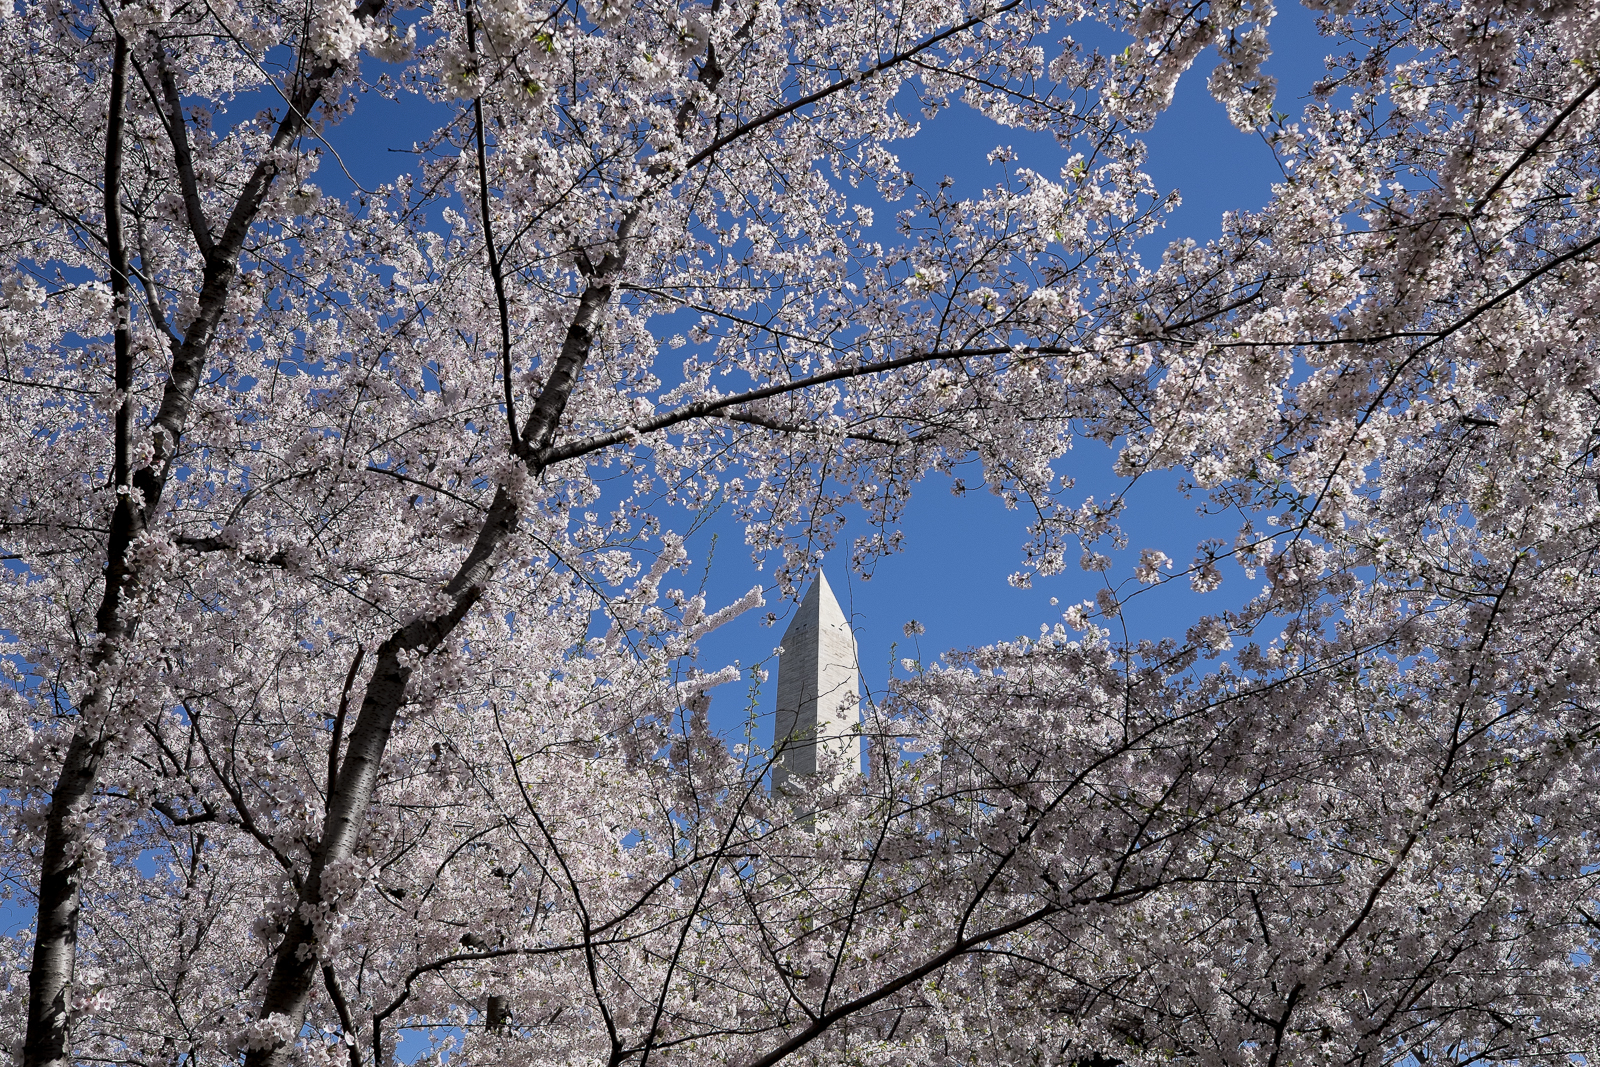 The Washington Monument seen through a grove of Cherry Blossoms in Washington, D.C.